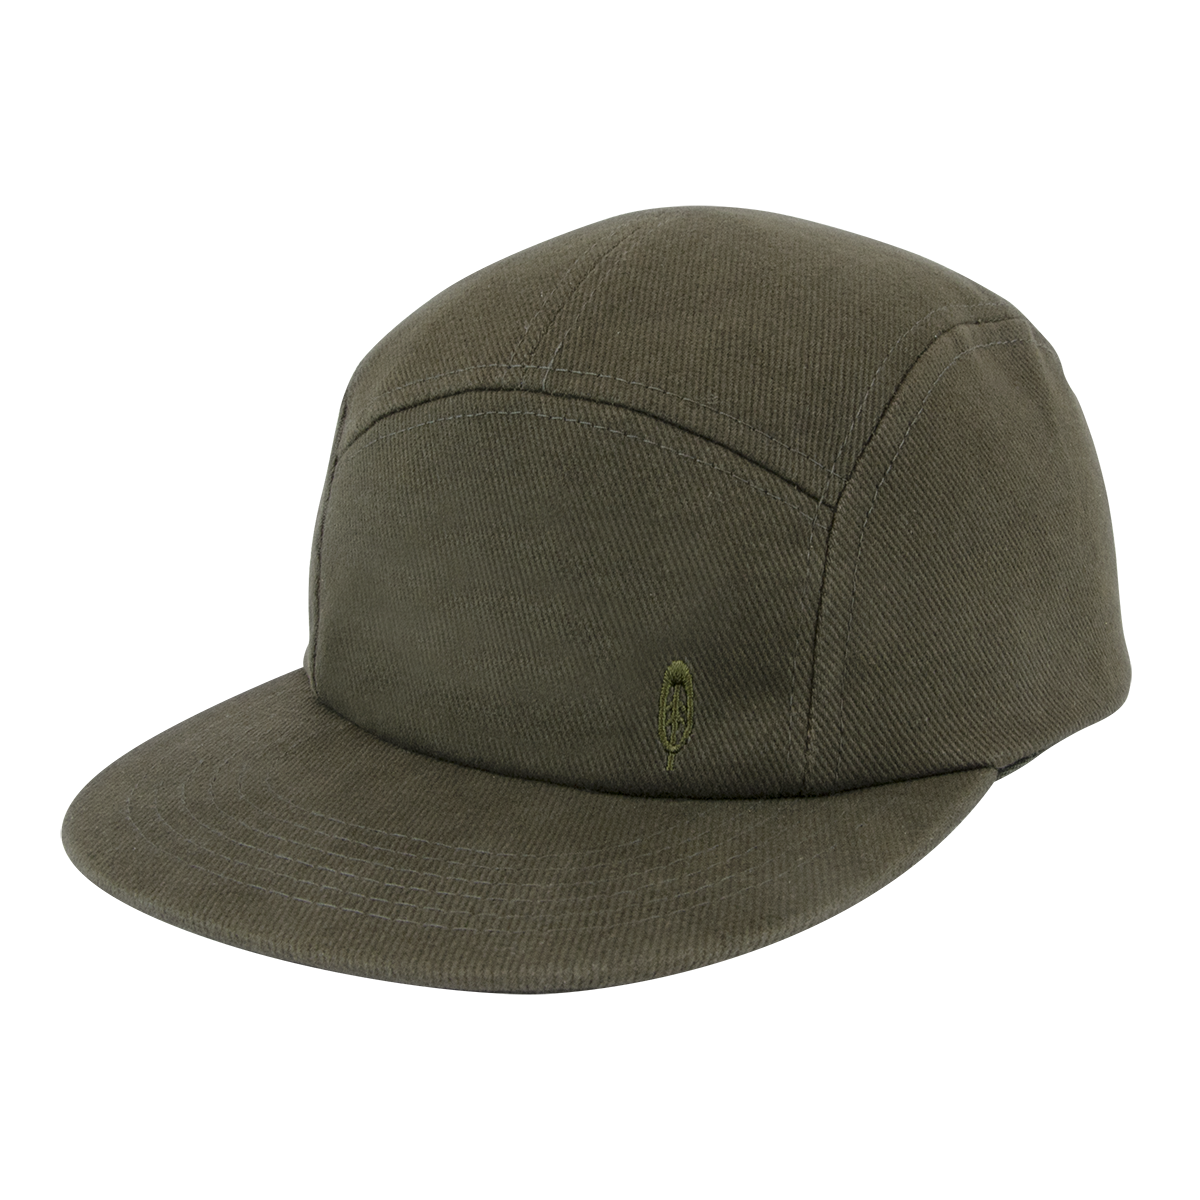 FIDIR » Mens 5 Panel Hat - Five Panel Cap - Green 5 Panel Cap